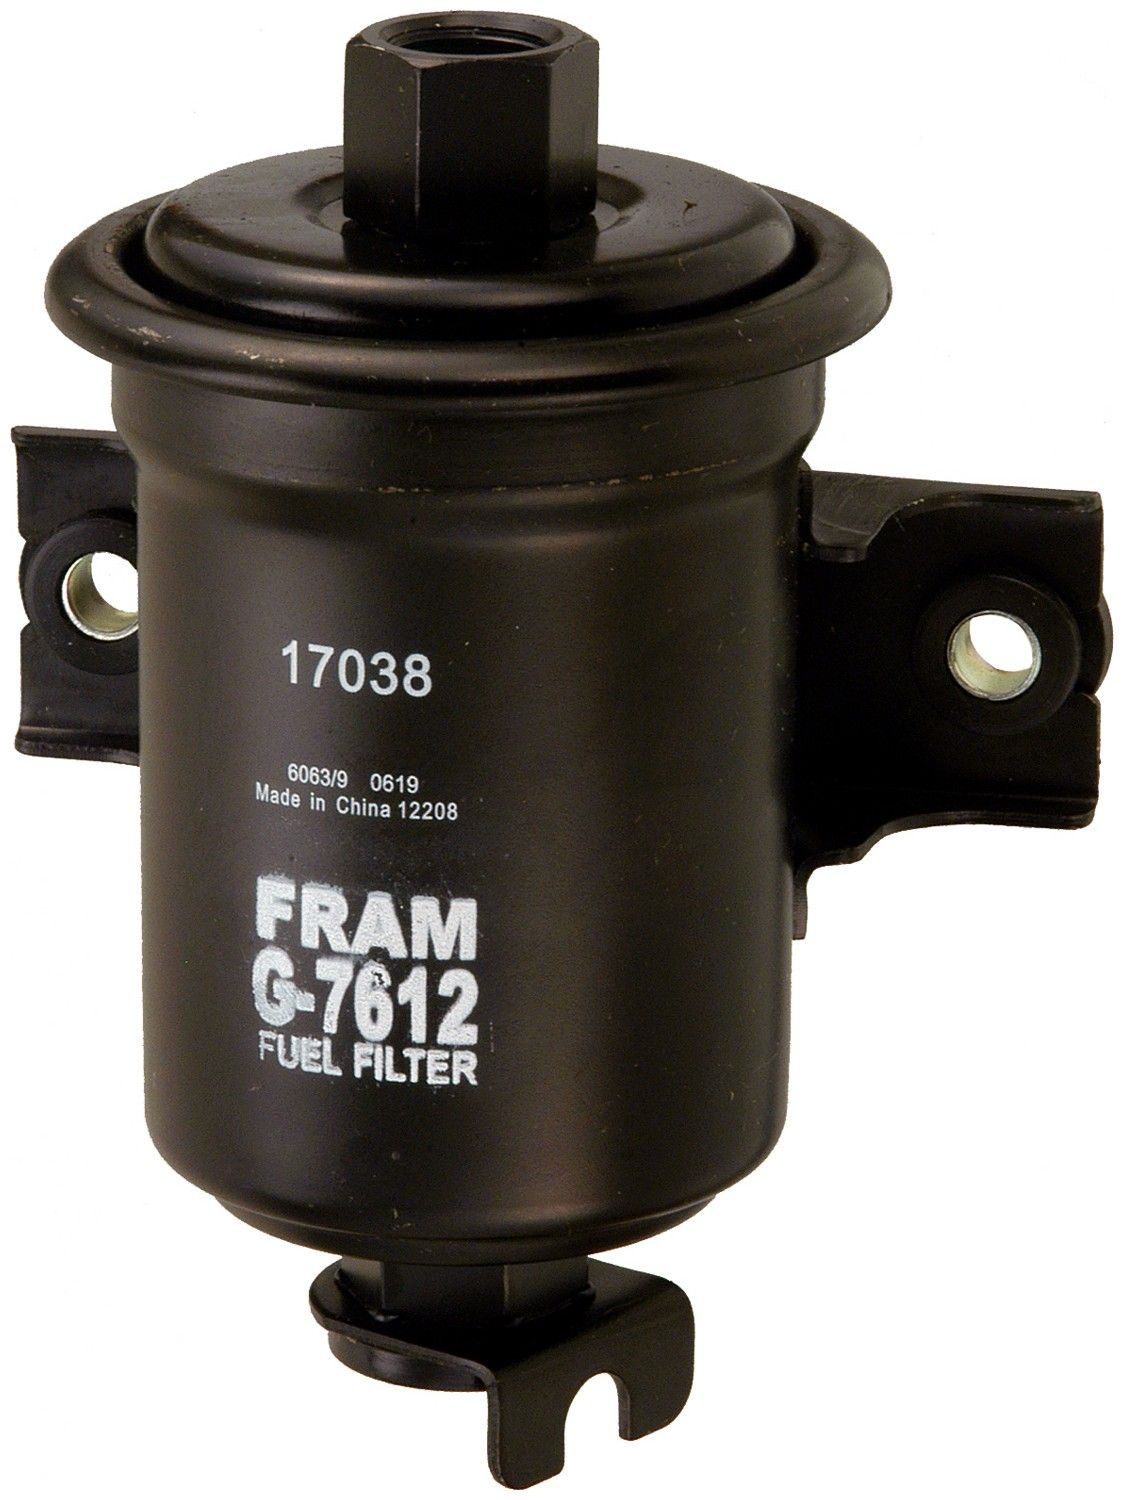 Toyota Corolla Fuel Filter Replacement Beck Arnley Fram Genuine 2000 Location 1993 4 Cyl 16l G7612 In Line